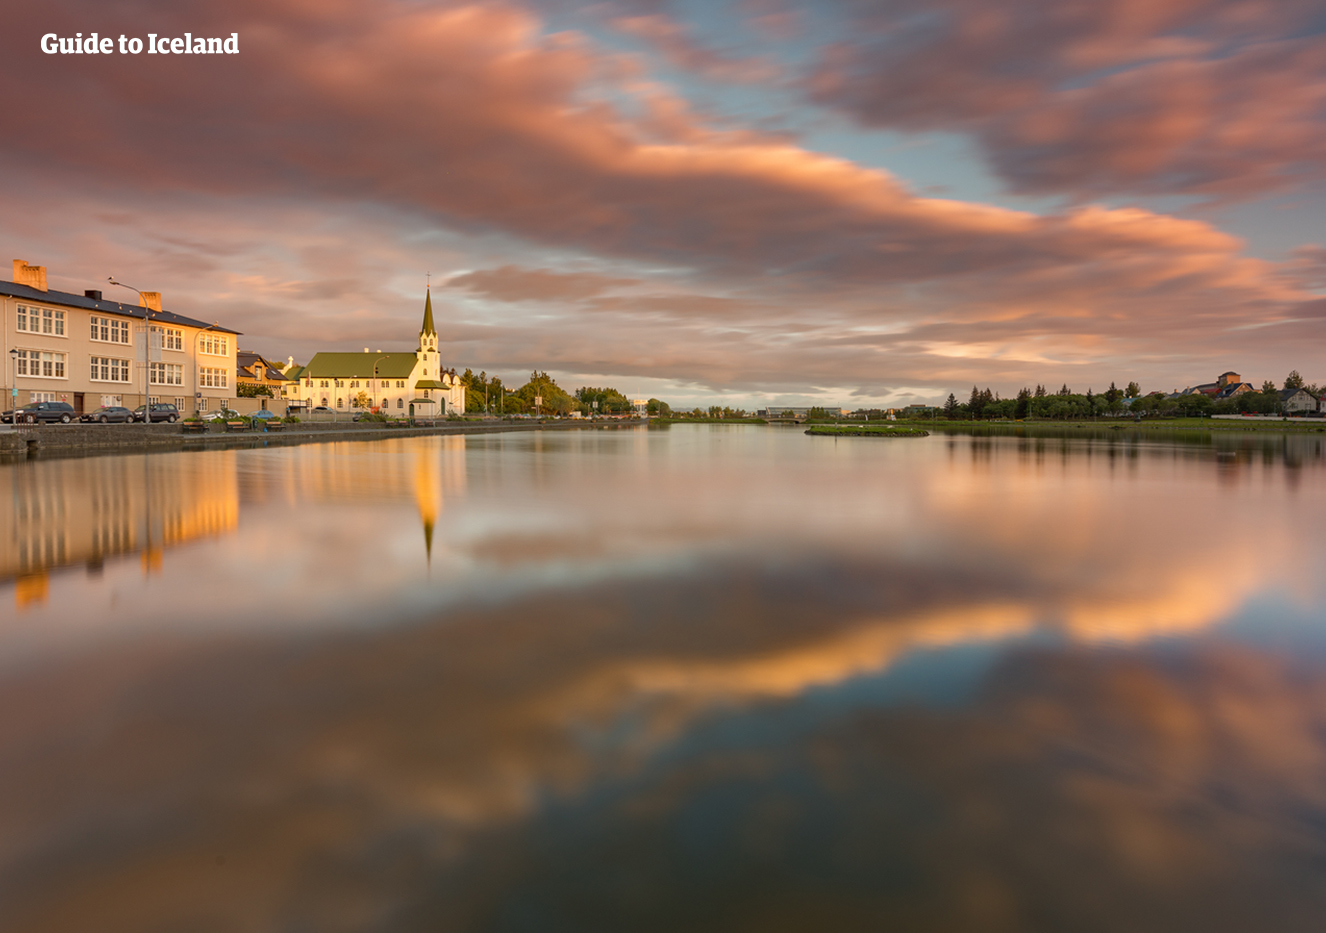 The city reflected in the waters of Tjörnin Pond in downtown Reykjavik.